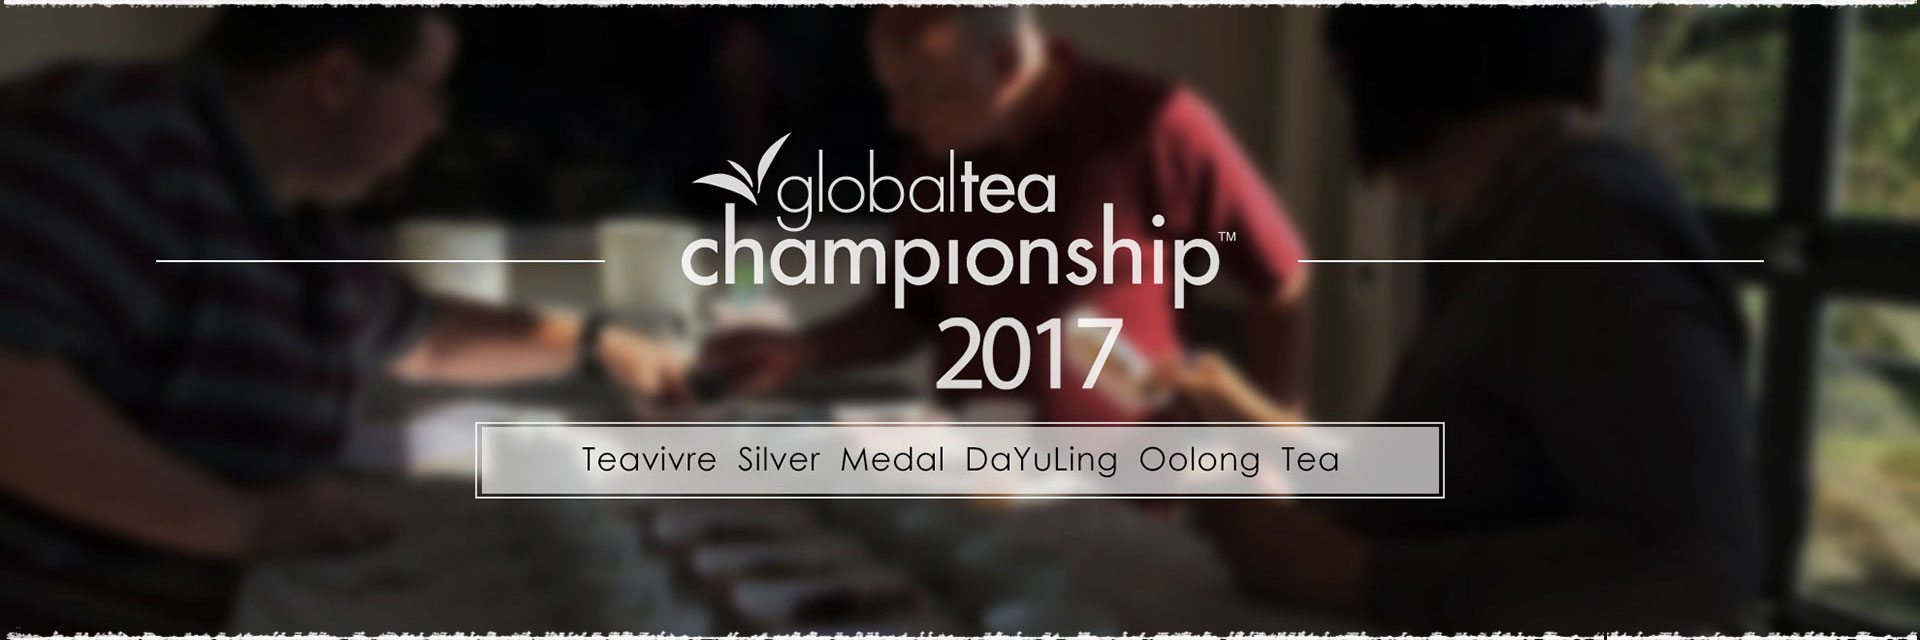 Teavivre DaYuLing Oolong Tea Takes Silver Medal at the Global Tea Championship